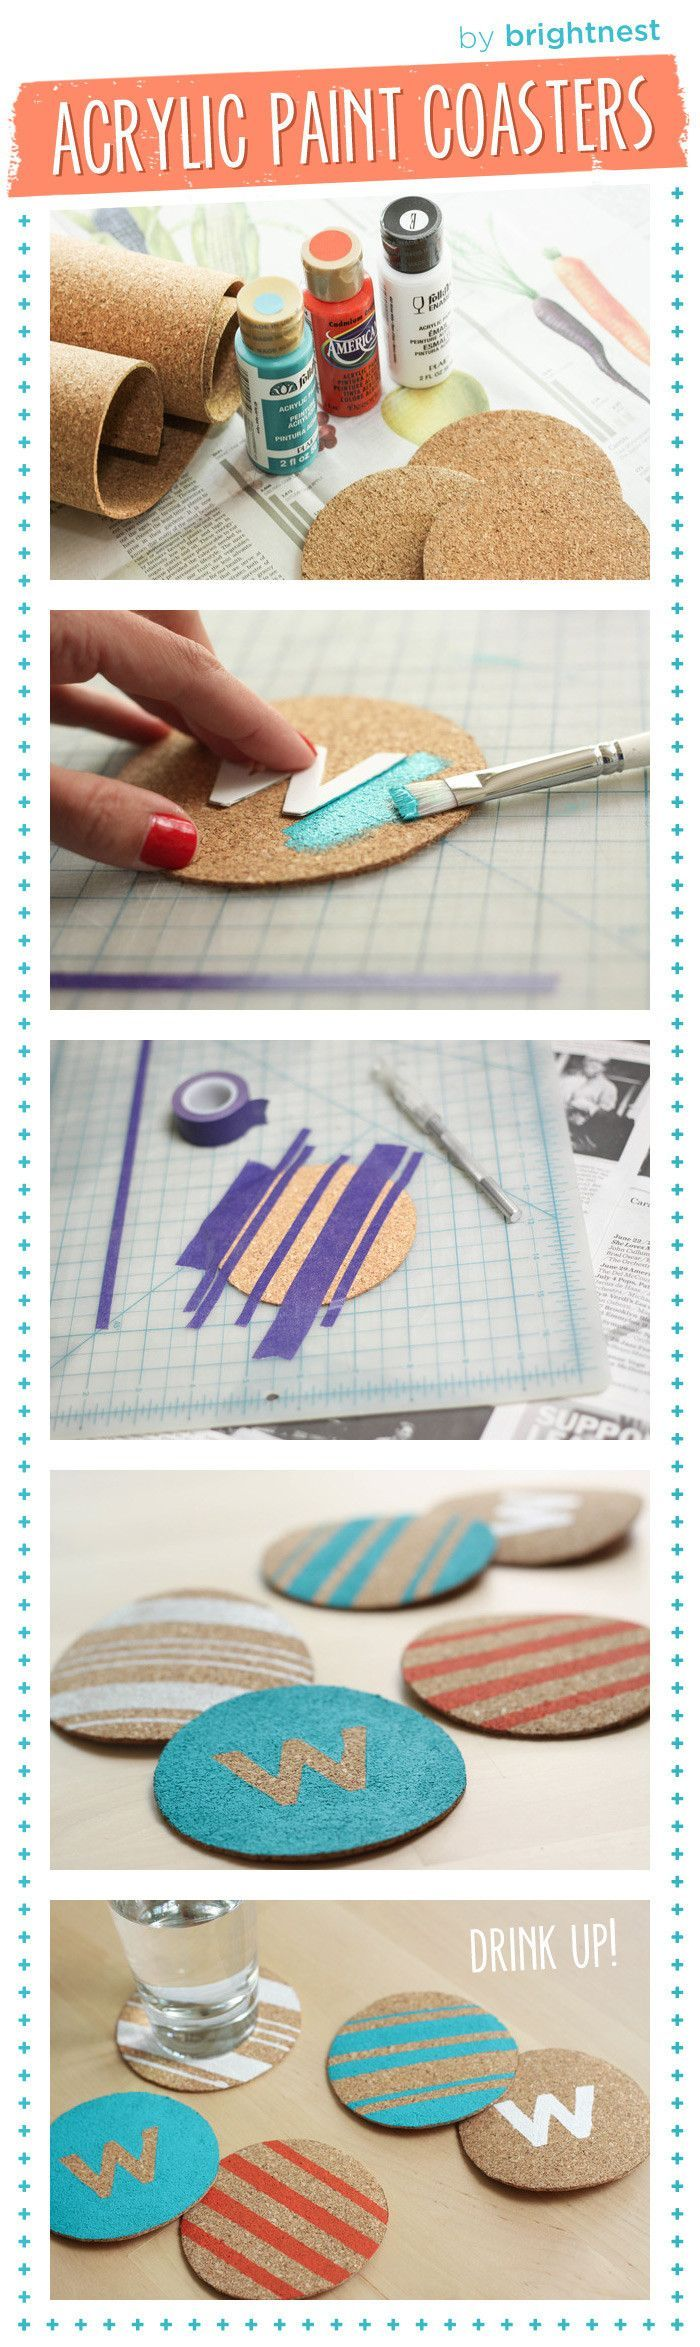 10 DIY Projects for the Home: Table Protectors #diy #project